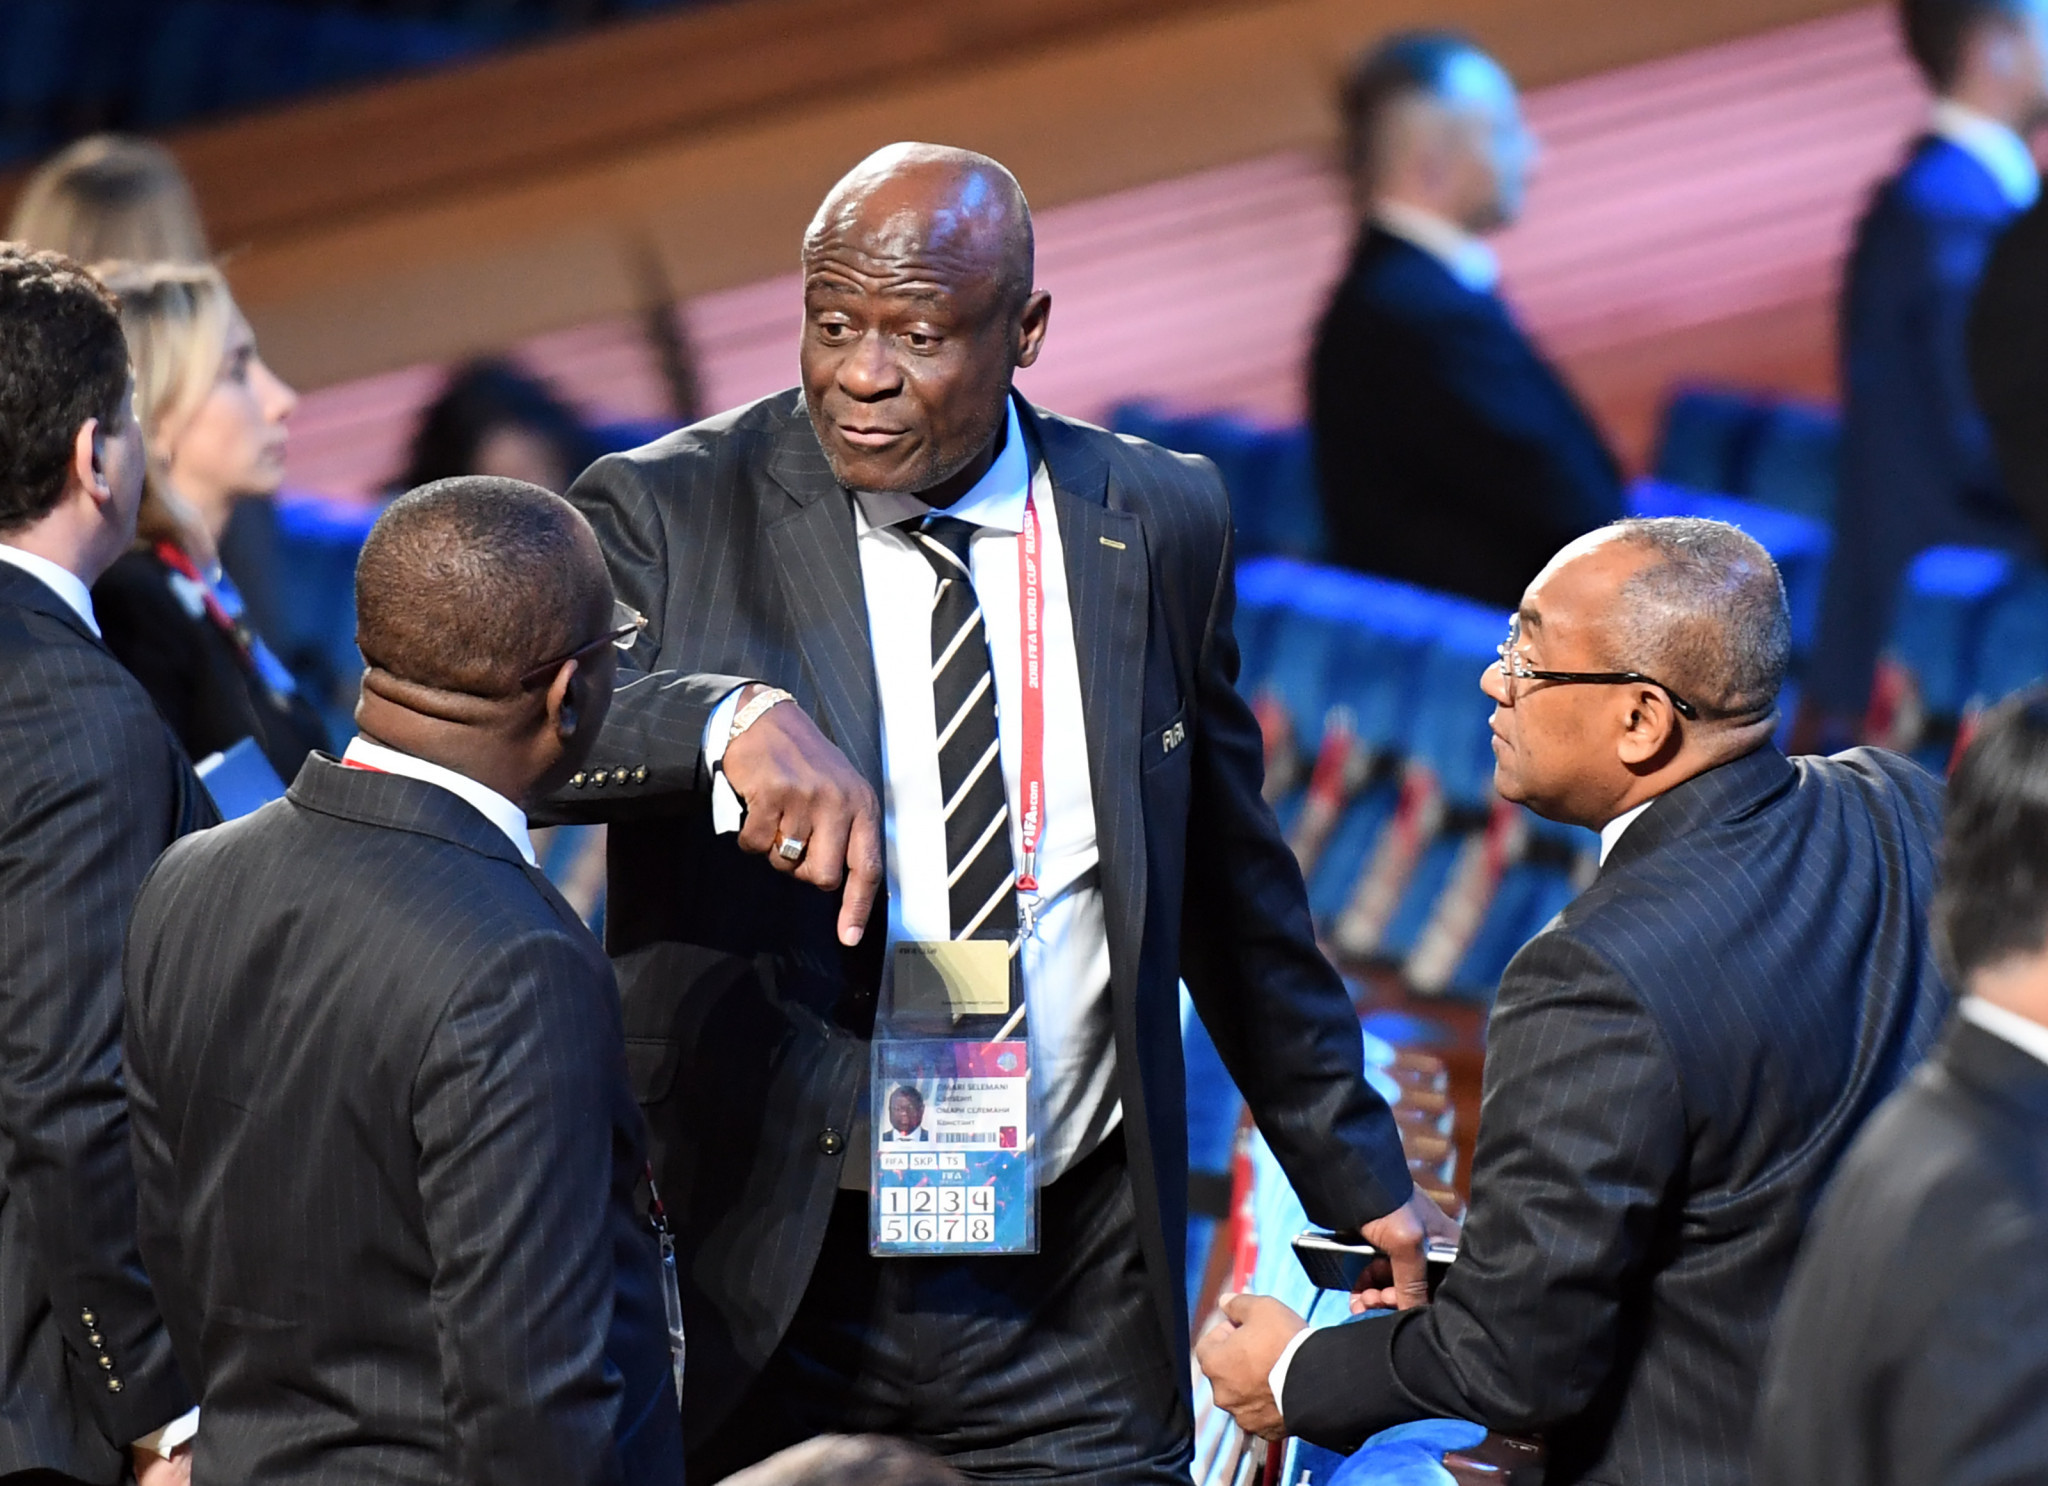 FIFA Council member Constant Omari has accused the DR Congo Sports Minister Papy Nyango of orchestrating his arrest on corruption charges ©Getty Images